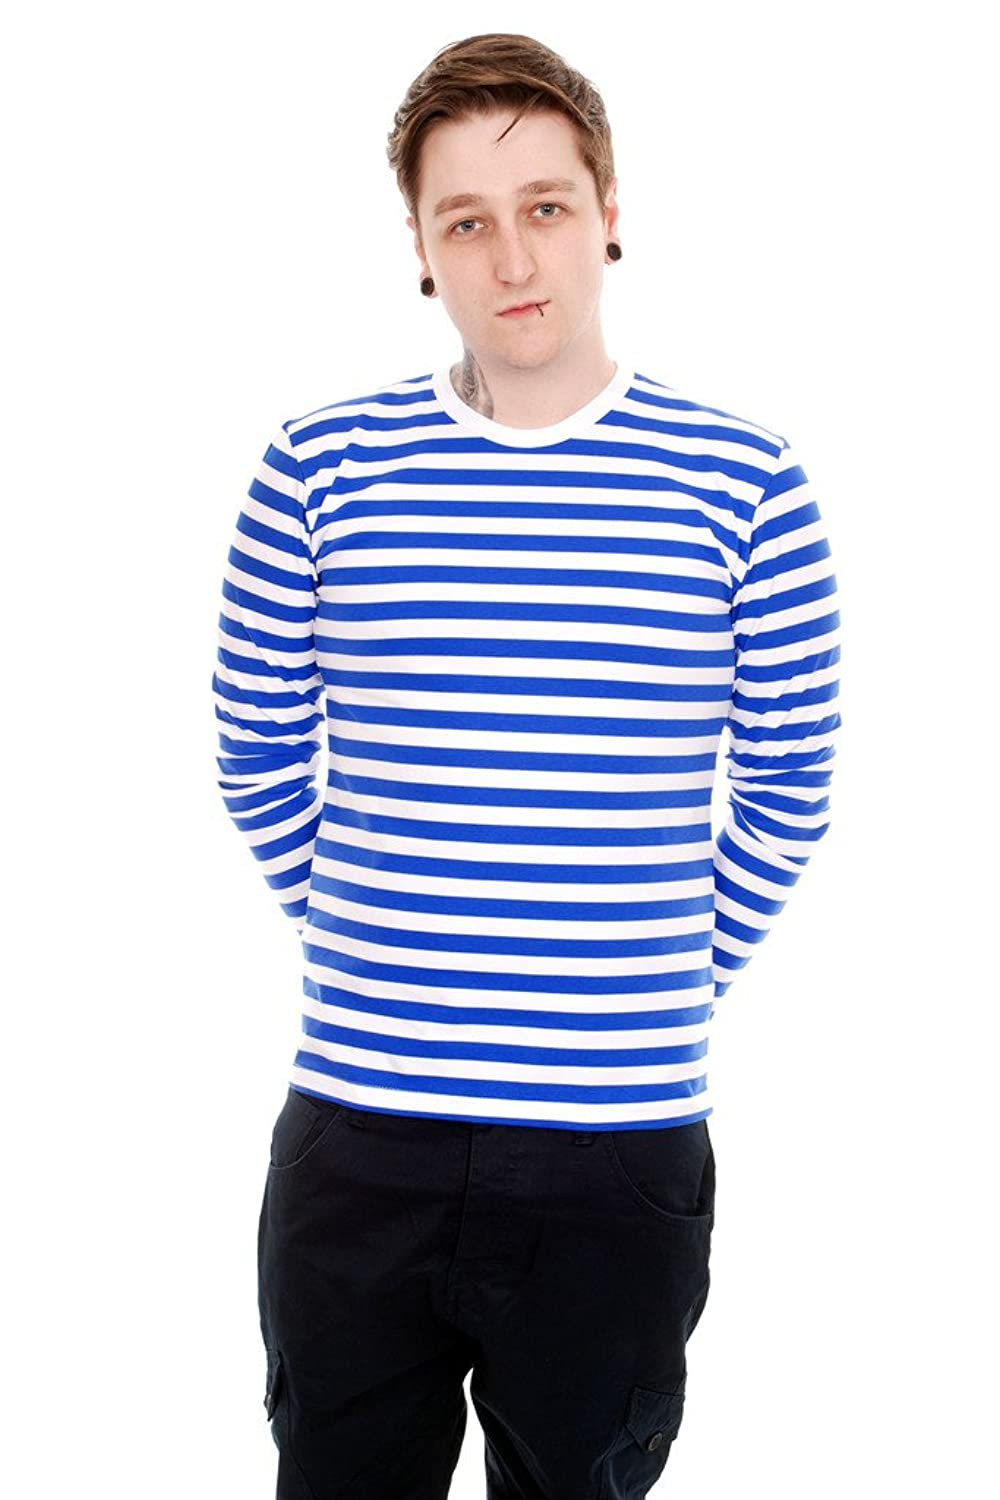 Edwardian Men's Shirts & Sweaters  Royal & White Striped Long Sleeve T Shirt $29.95 AT vintagedancer.com